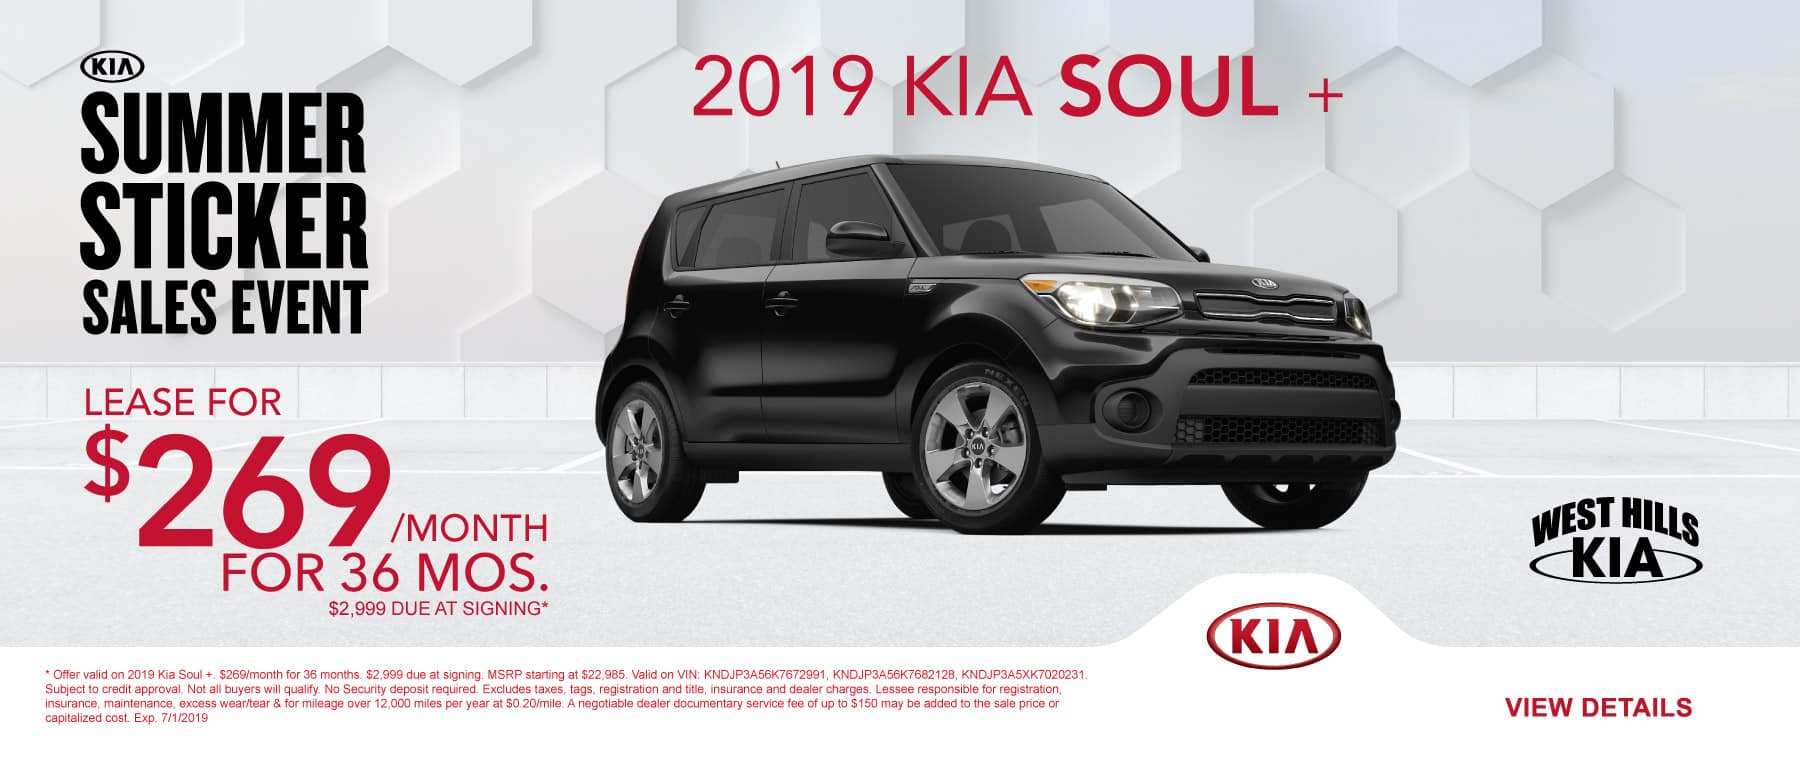 2019 Kia Soul + $269/month for 36 months  $2,999 Due at Signing  * Offer valid on 2019 Kia Soul +. $269/month for 36 months. $2,999 due at signing. MSRP starting at $22,985. Valid on VIN: KNDJP3A56K7672991, KNDJP3A56K7682128, KNDJP3A5XK7020231. Subject to credit approval. Not all buyers will qualify. No Security deposit required. Excludes taxes, tags, registration and title, insurance and dealer charges. Lessee responsible for registration, insurance, maintenance, excess wear/tear & for mileage over 12,000 miles per year at $0.20/mile. A negotiable dealer documentary service fee of up to $150 may be added to the sale price or capitalized cost. Exp. 7/1/2019.